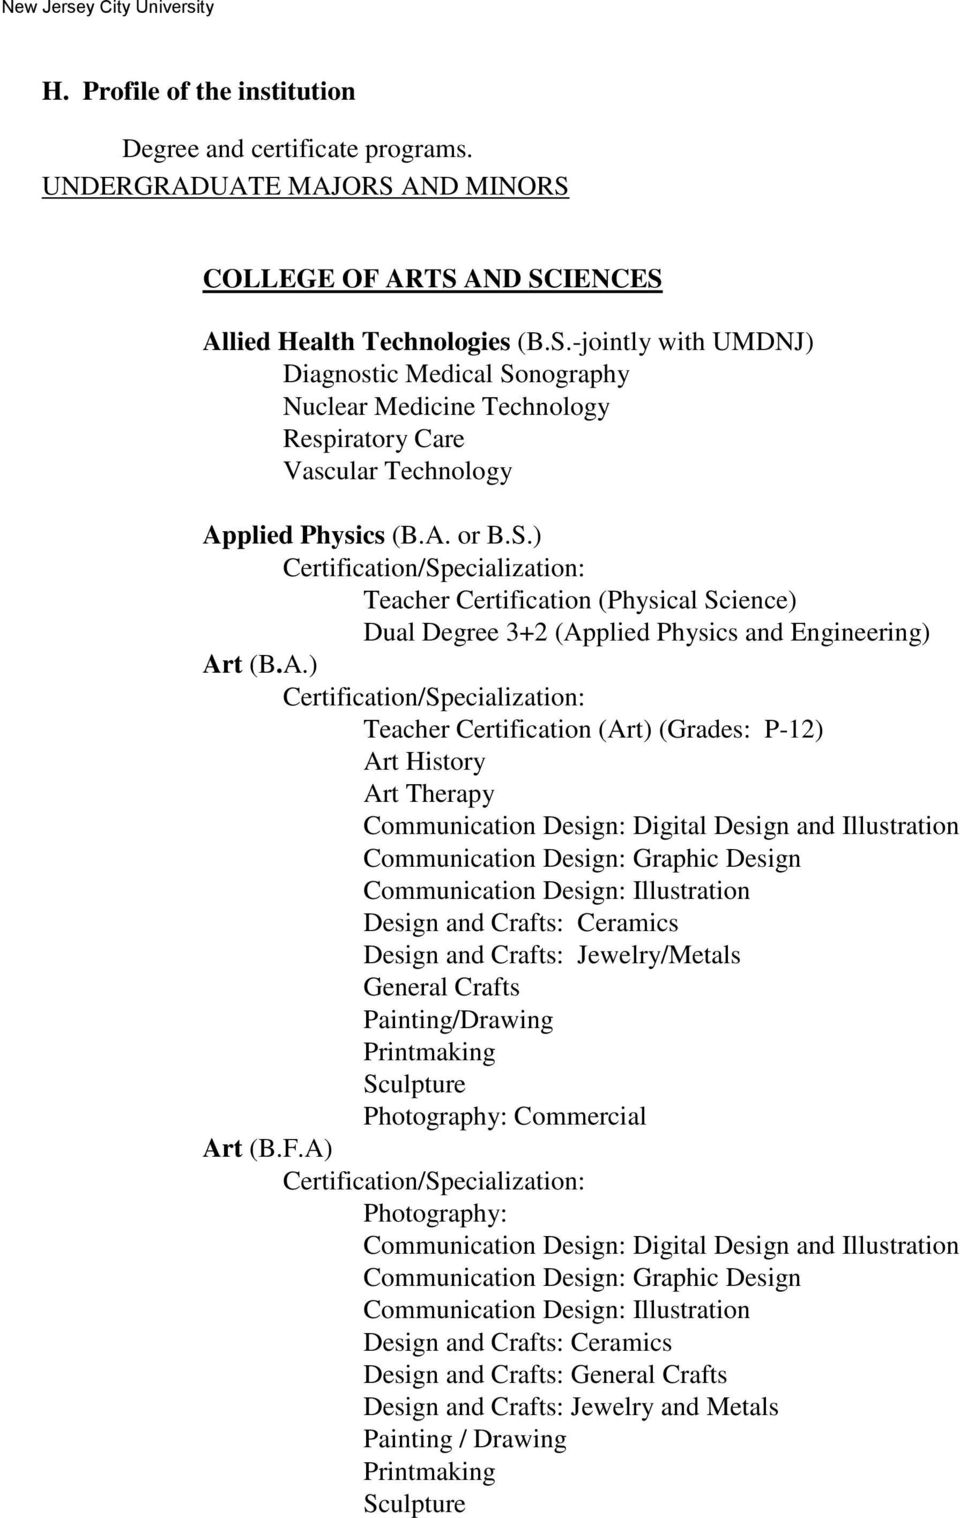 A. or B.S.) Teacher Certification (Physical Science) Dual Degree 3+2 (Applied Physics and Engineering) Art (B.A.) Teacher Certification (Art) (Grades: P-12) Art History Art Therapy Communication